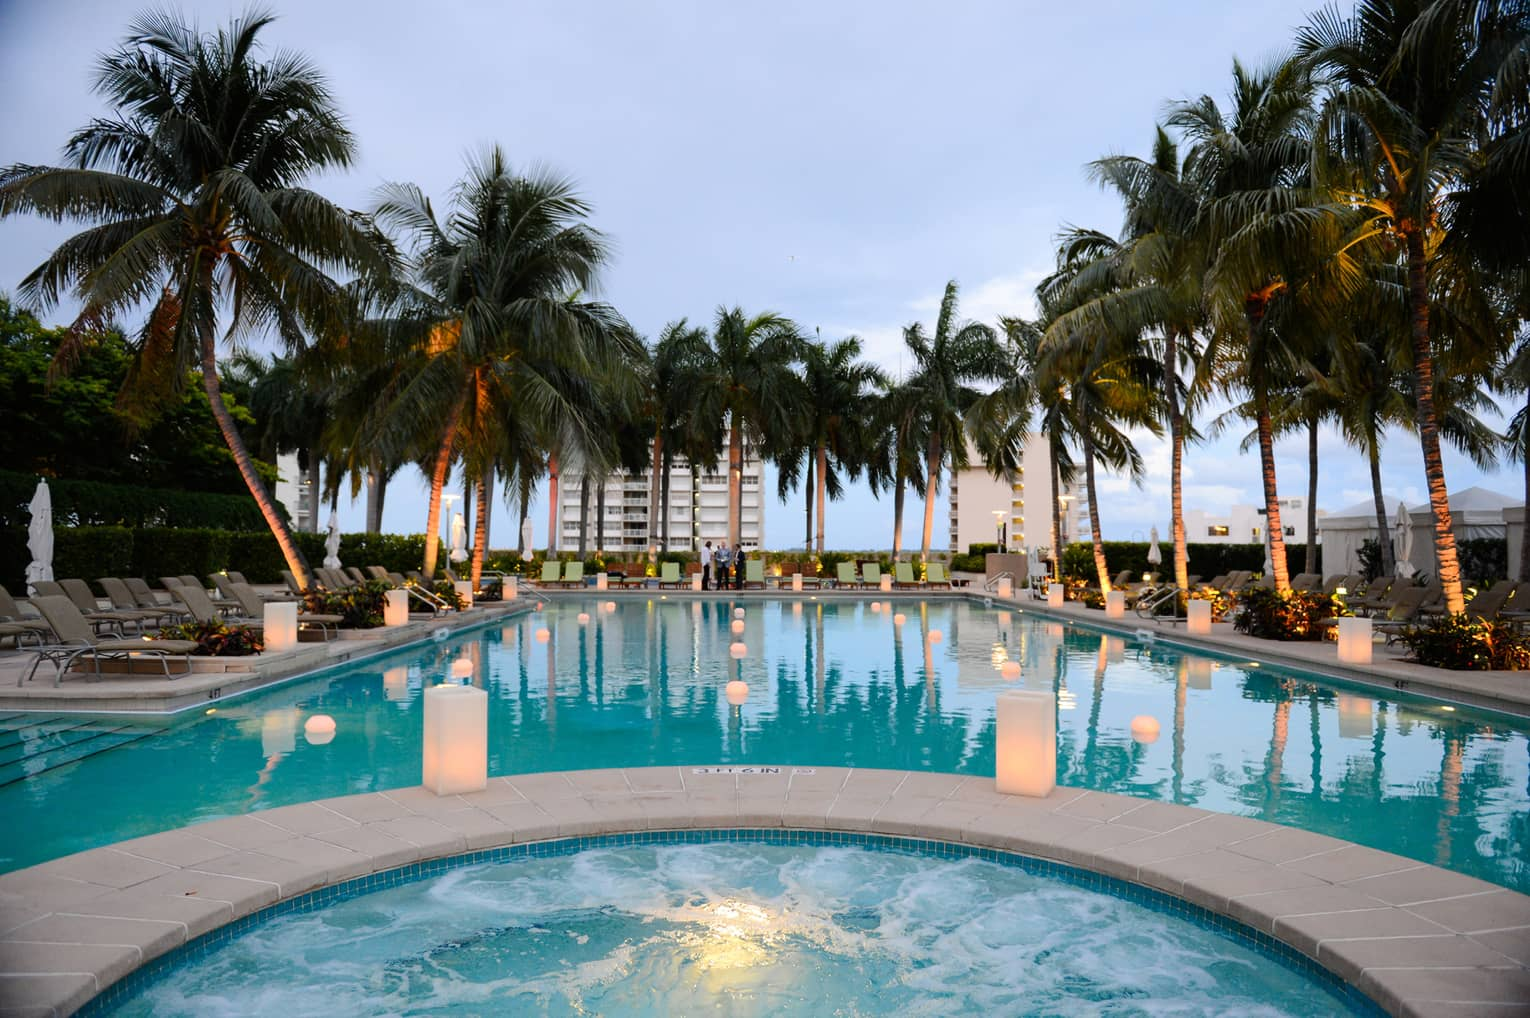 White lanterns glow along outdoor pool lined with palm trees